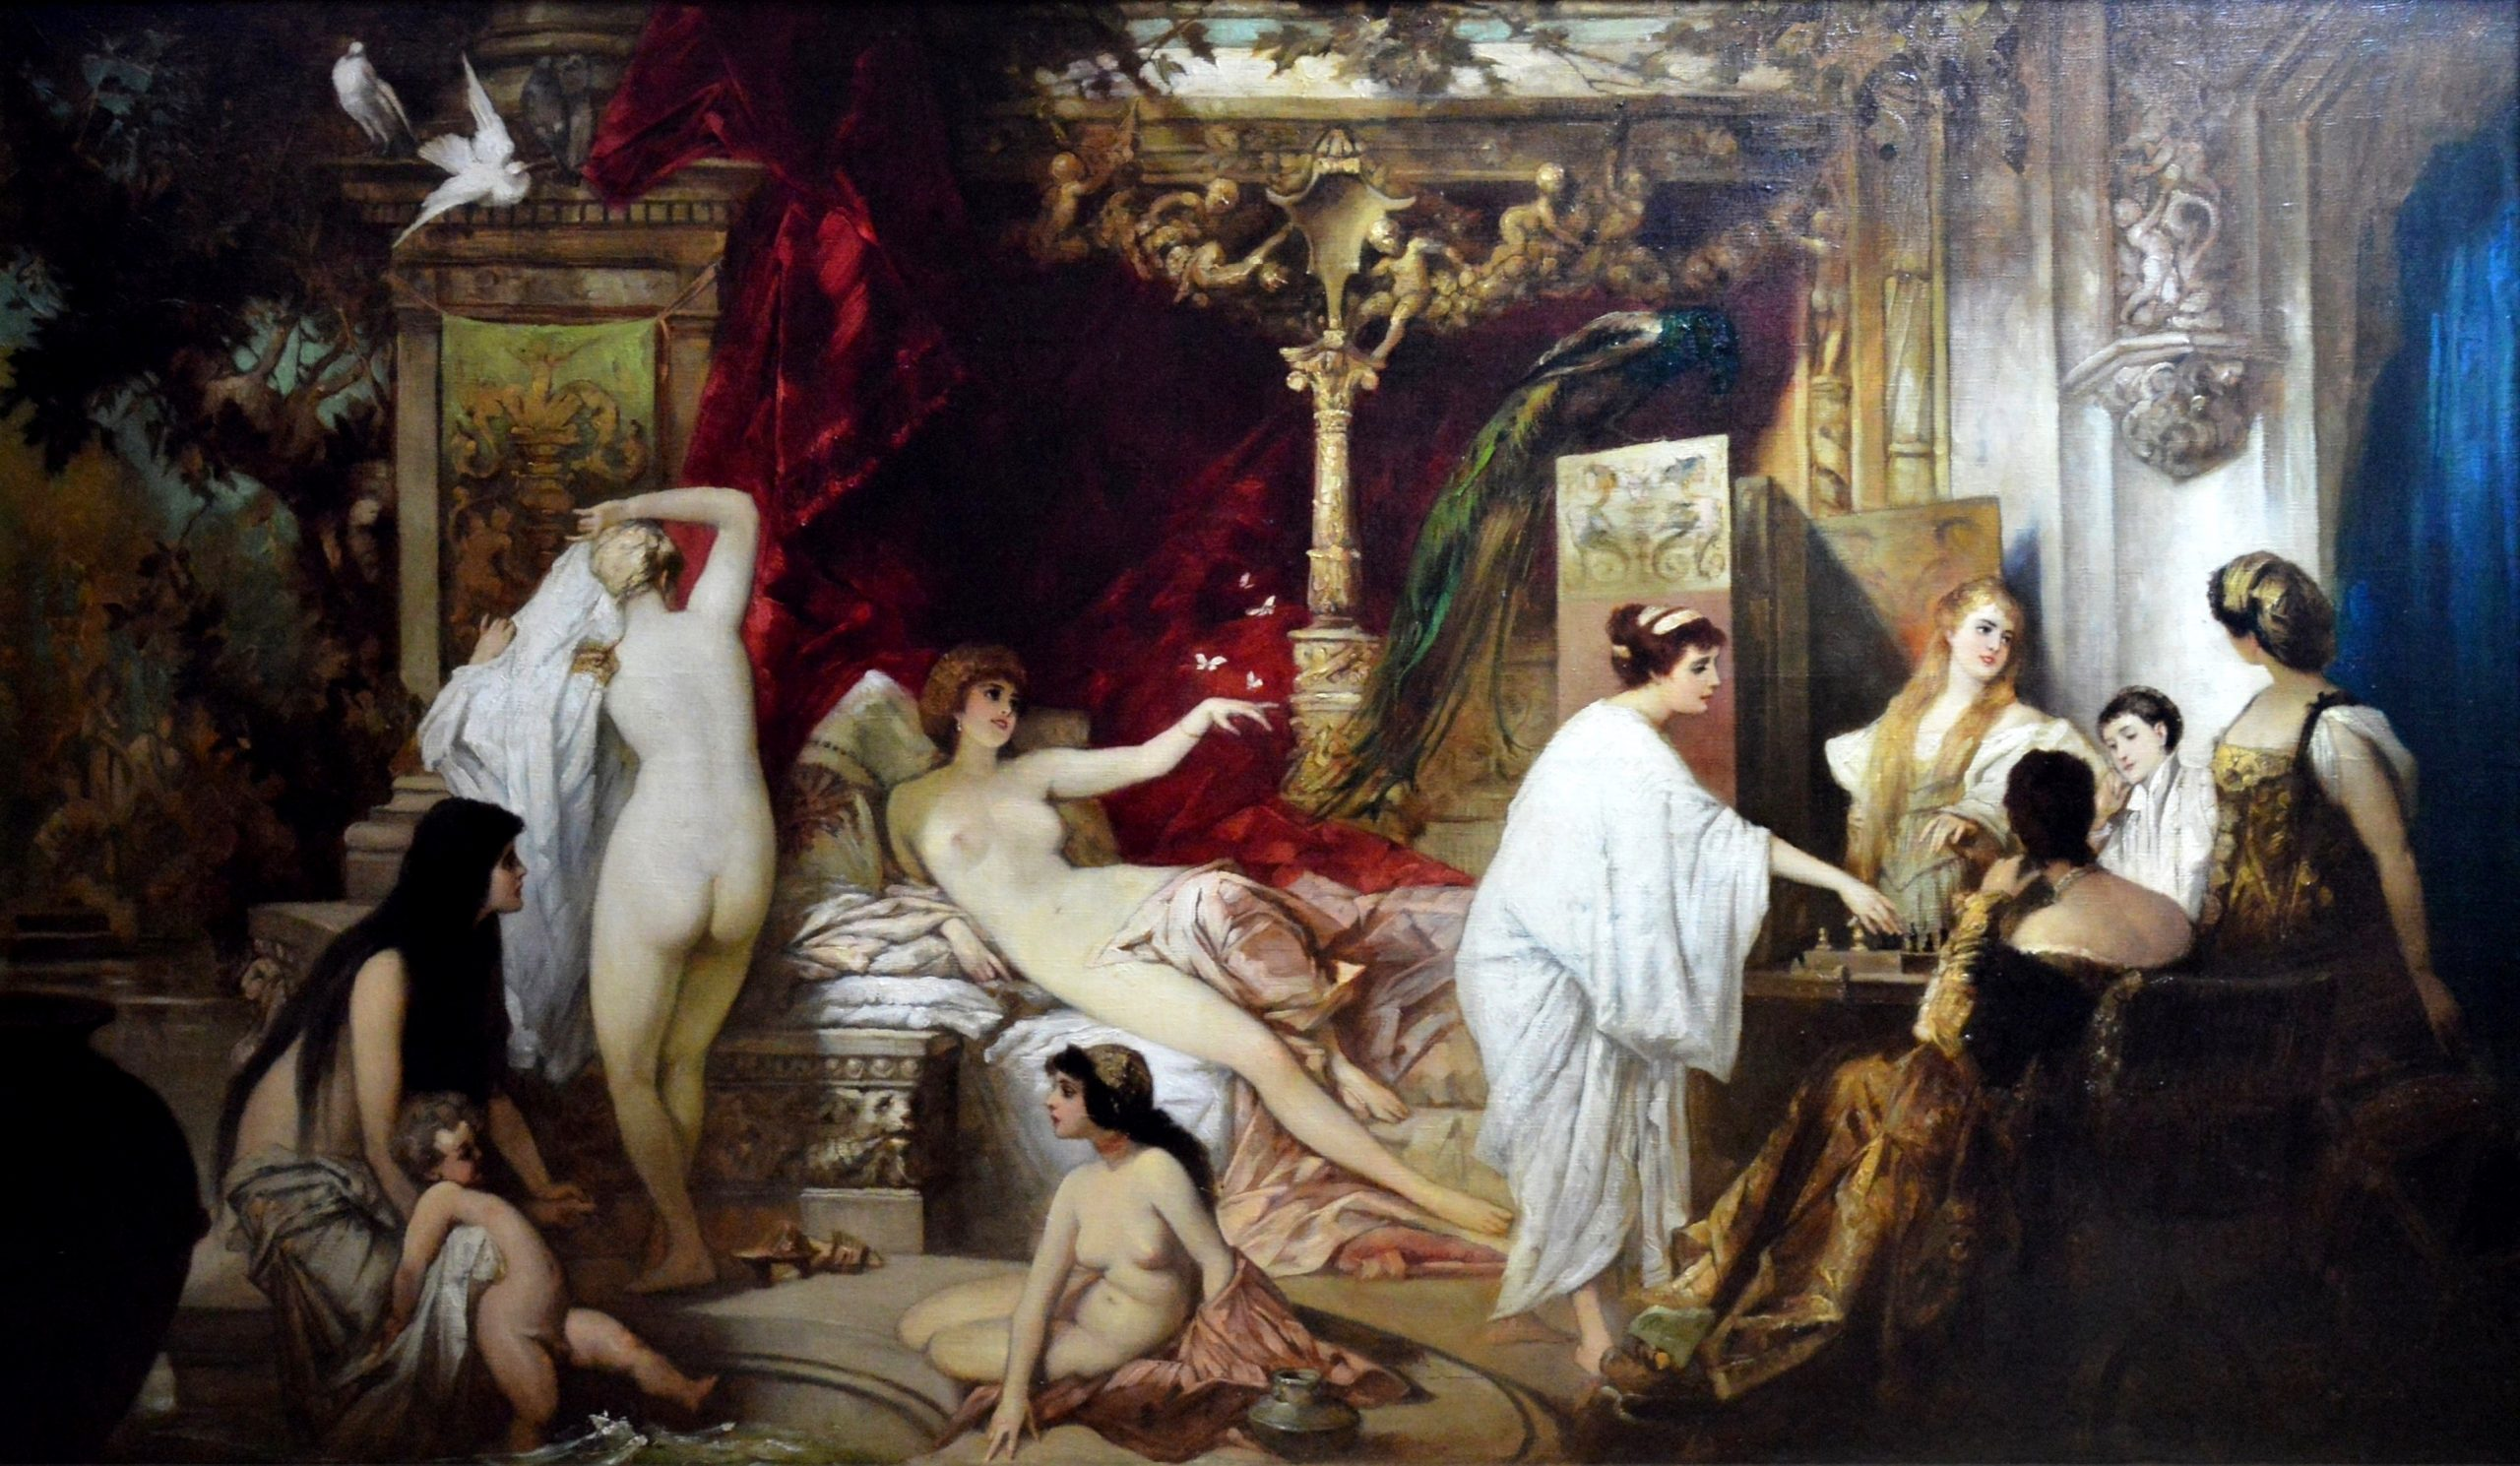 In the Harem - Huge 19th Century Orientalist Oil Painting Image